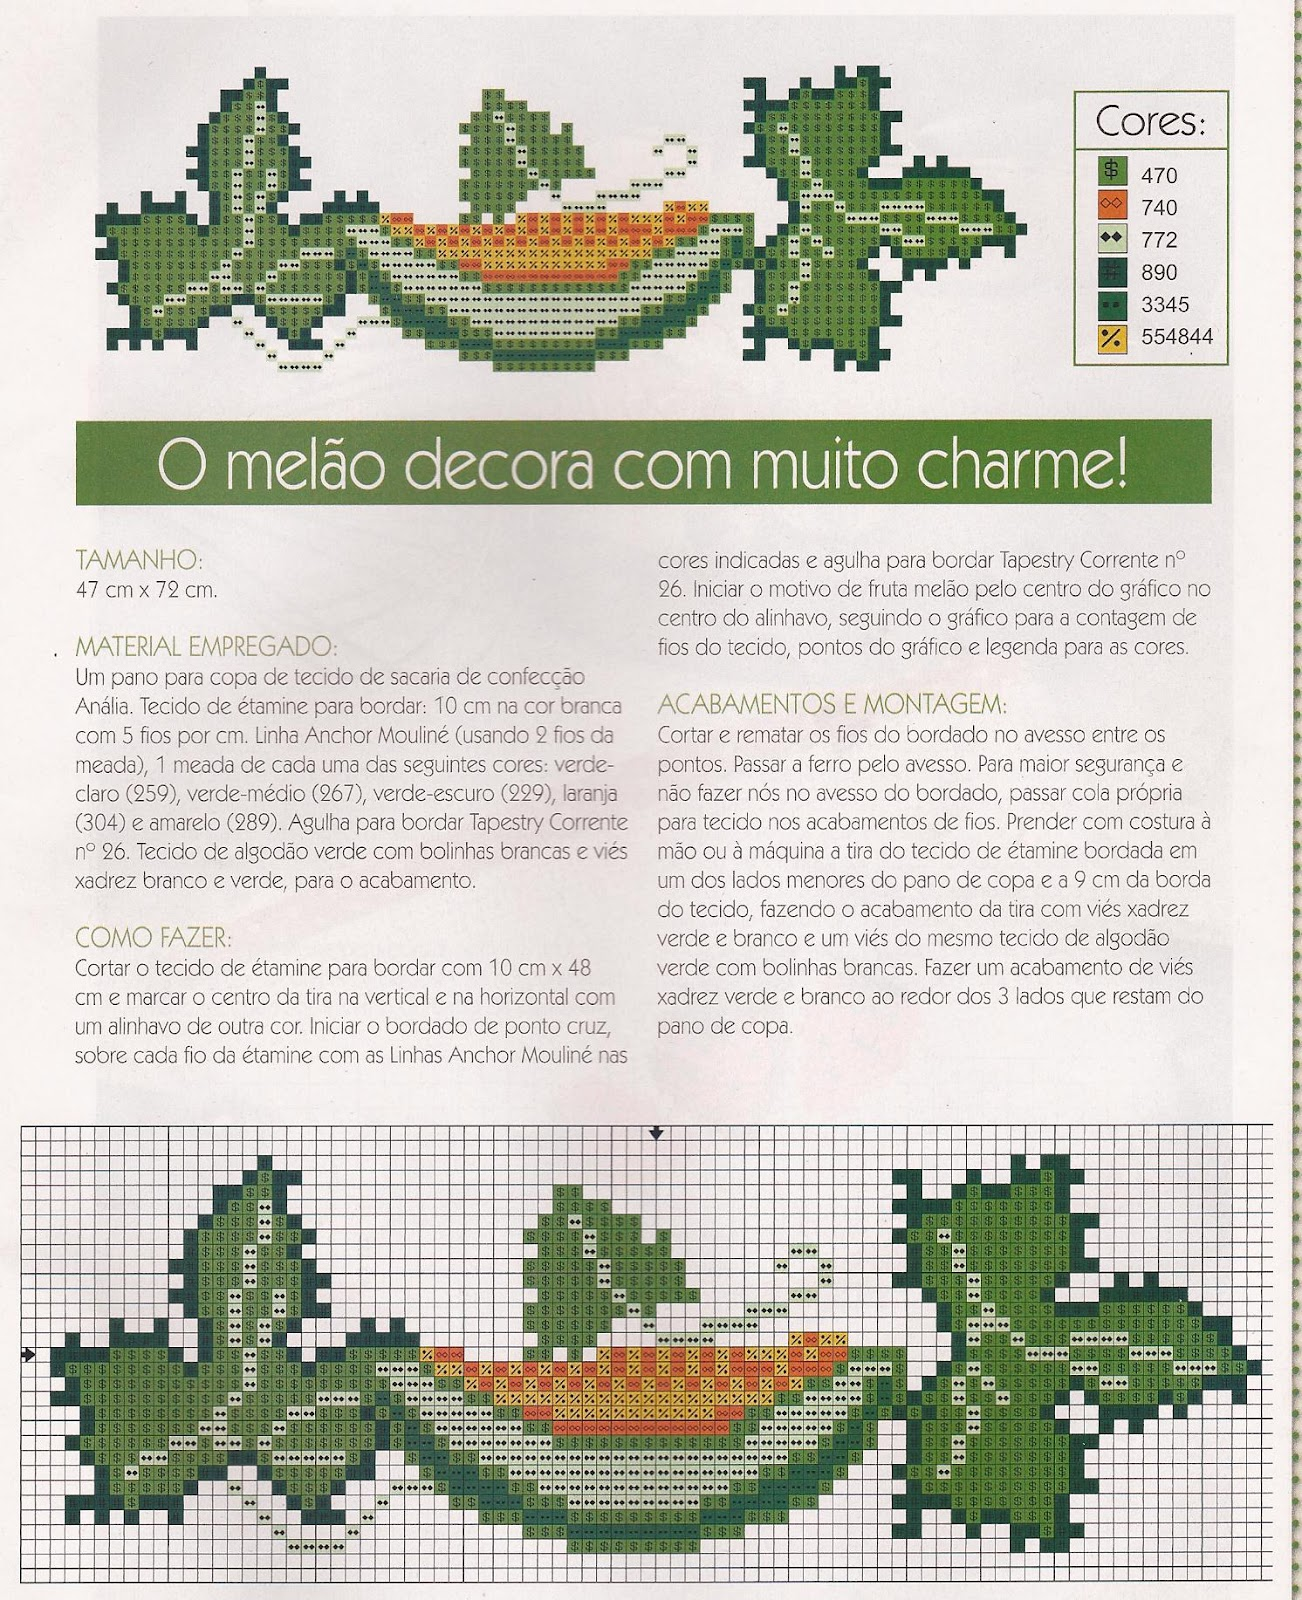 http://3.bp.blogspot.com/-A6m17-Uy2N0/T-mebcOtvfI/AAAAAAAABqM/FF59J2on7Ss/s1600/Gráfico%20do%20melão.jpg